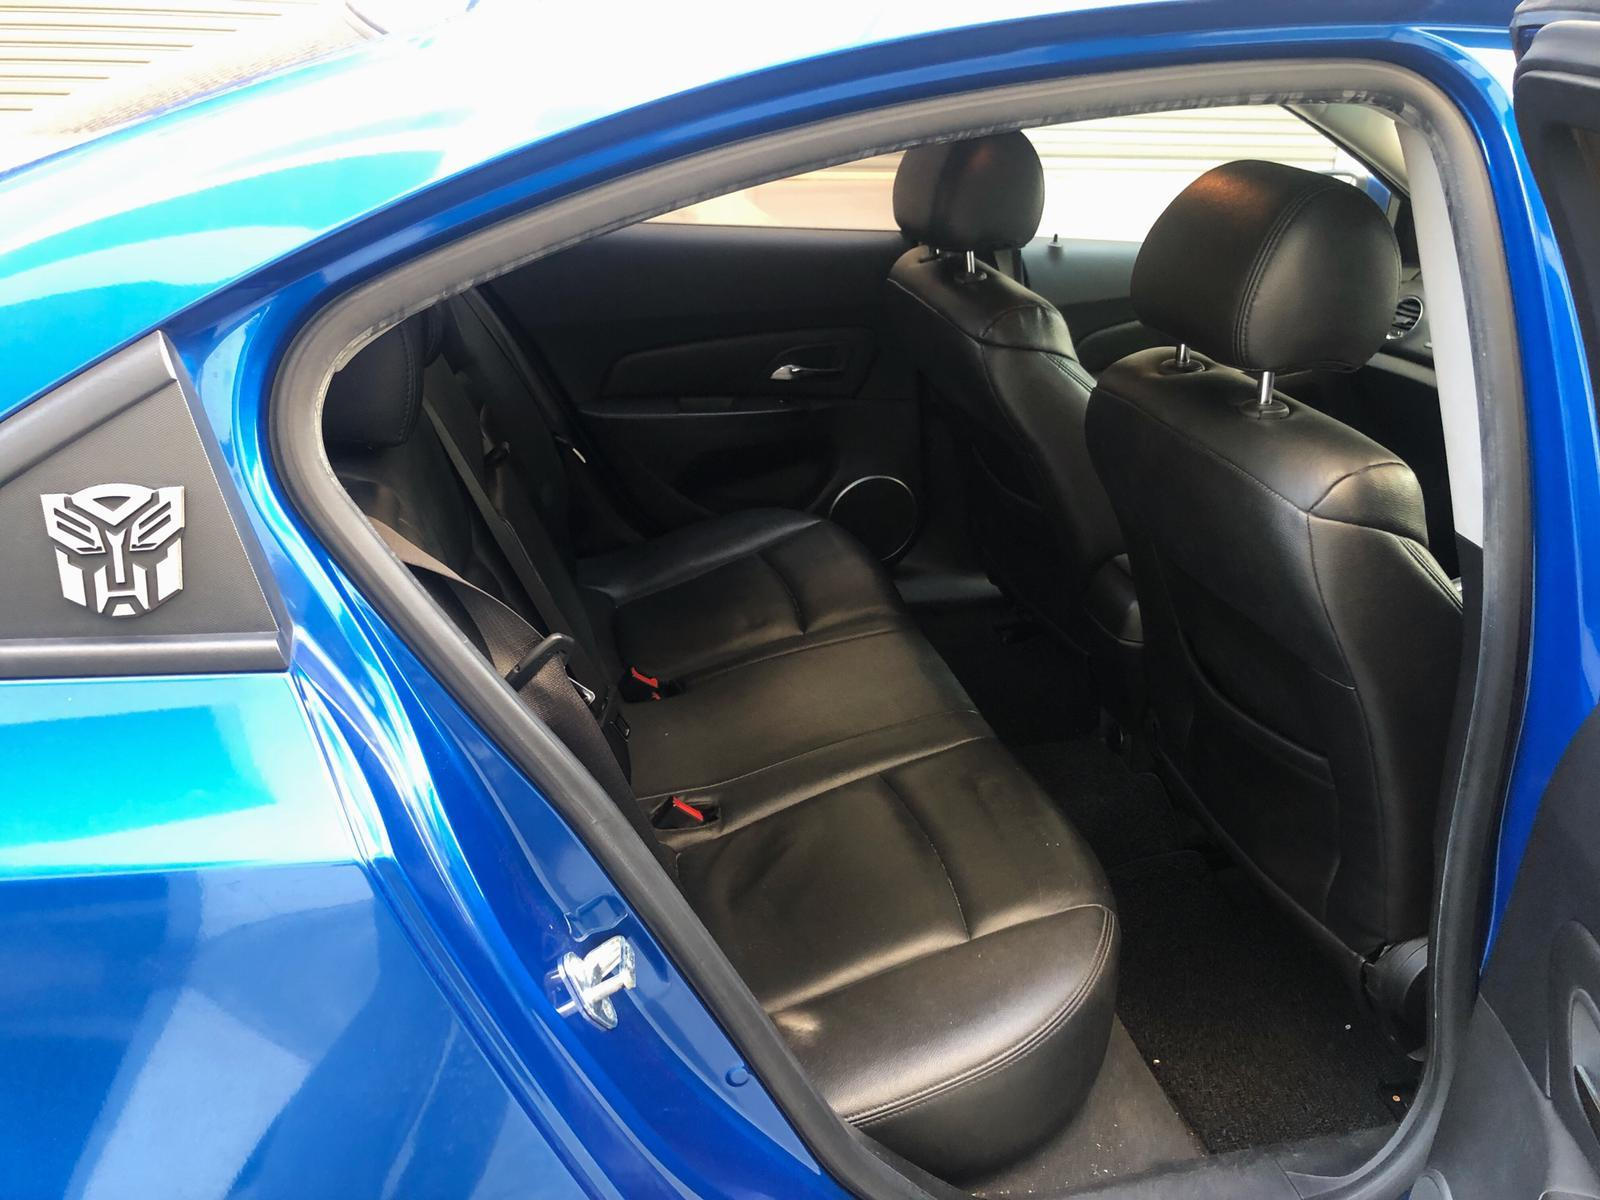 Chevrolet Cruze 1.6a Conti car for rent Grab Rental Gojek Or Personal Use low price and CHEAPEST RENTAL